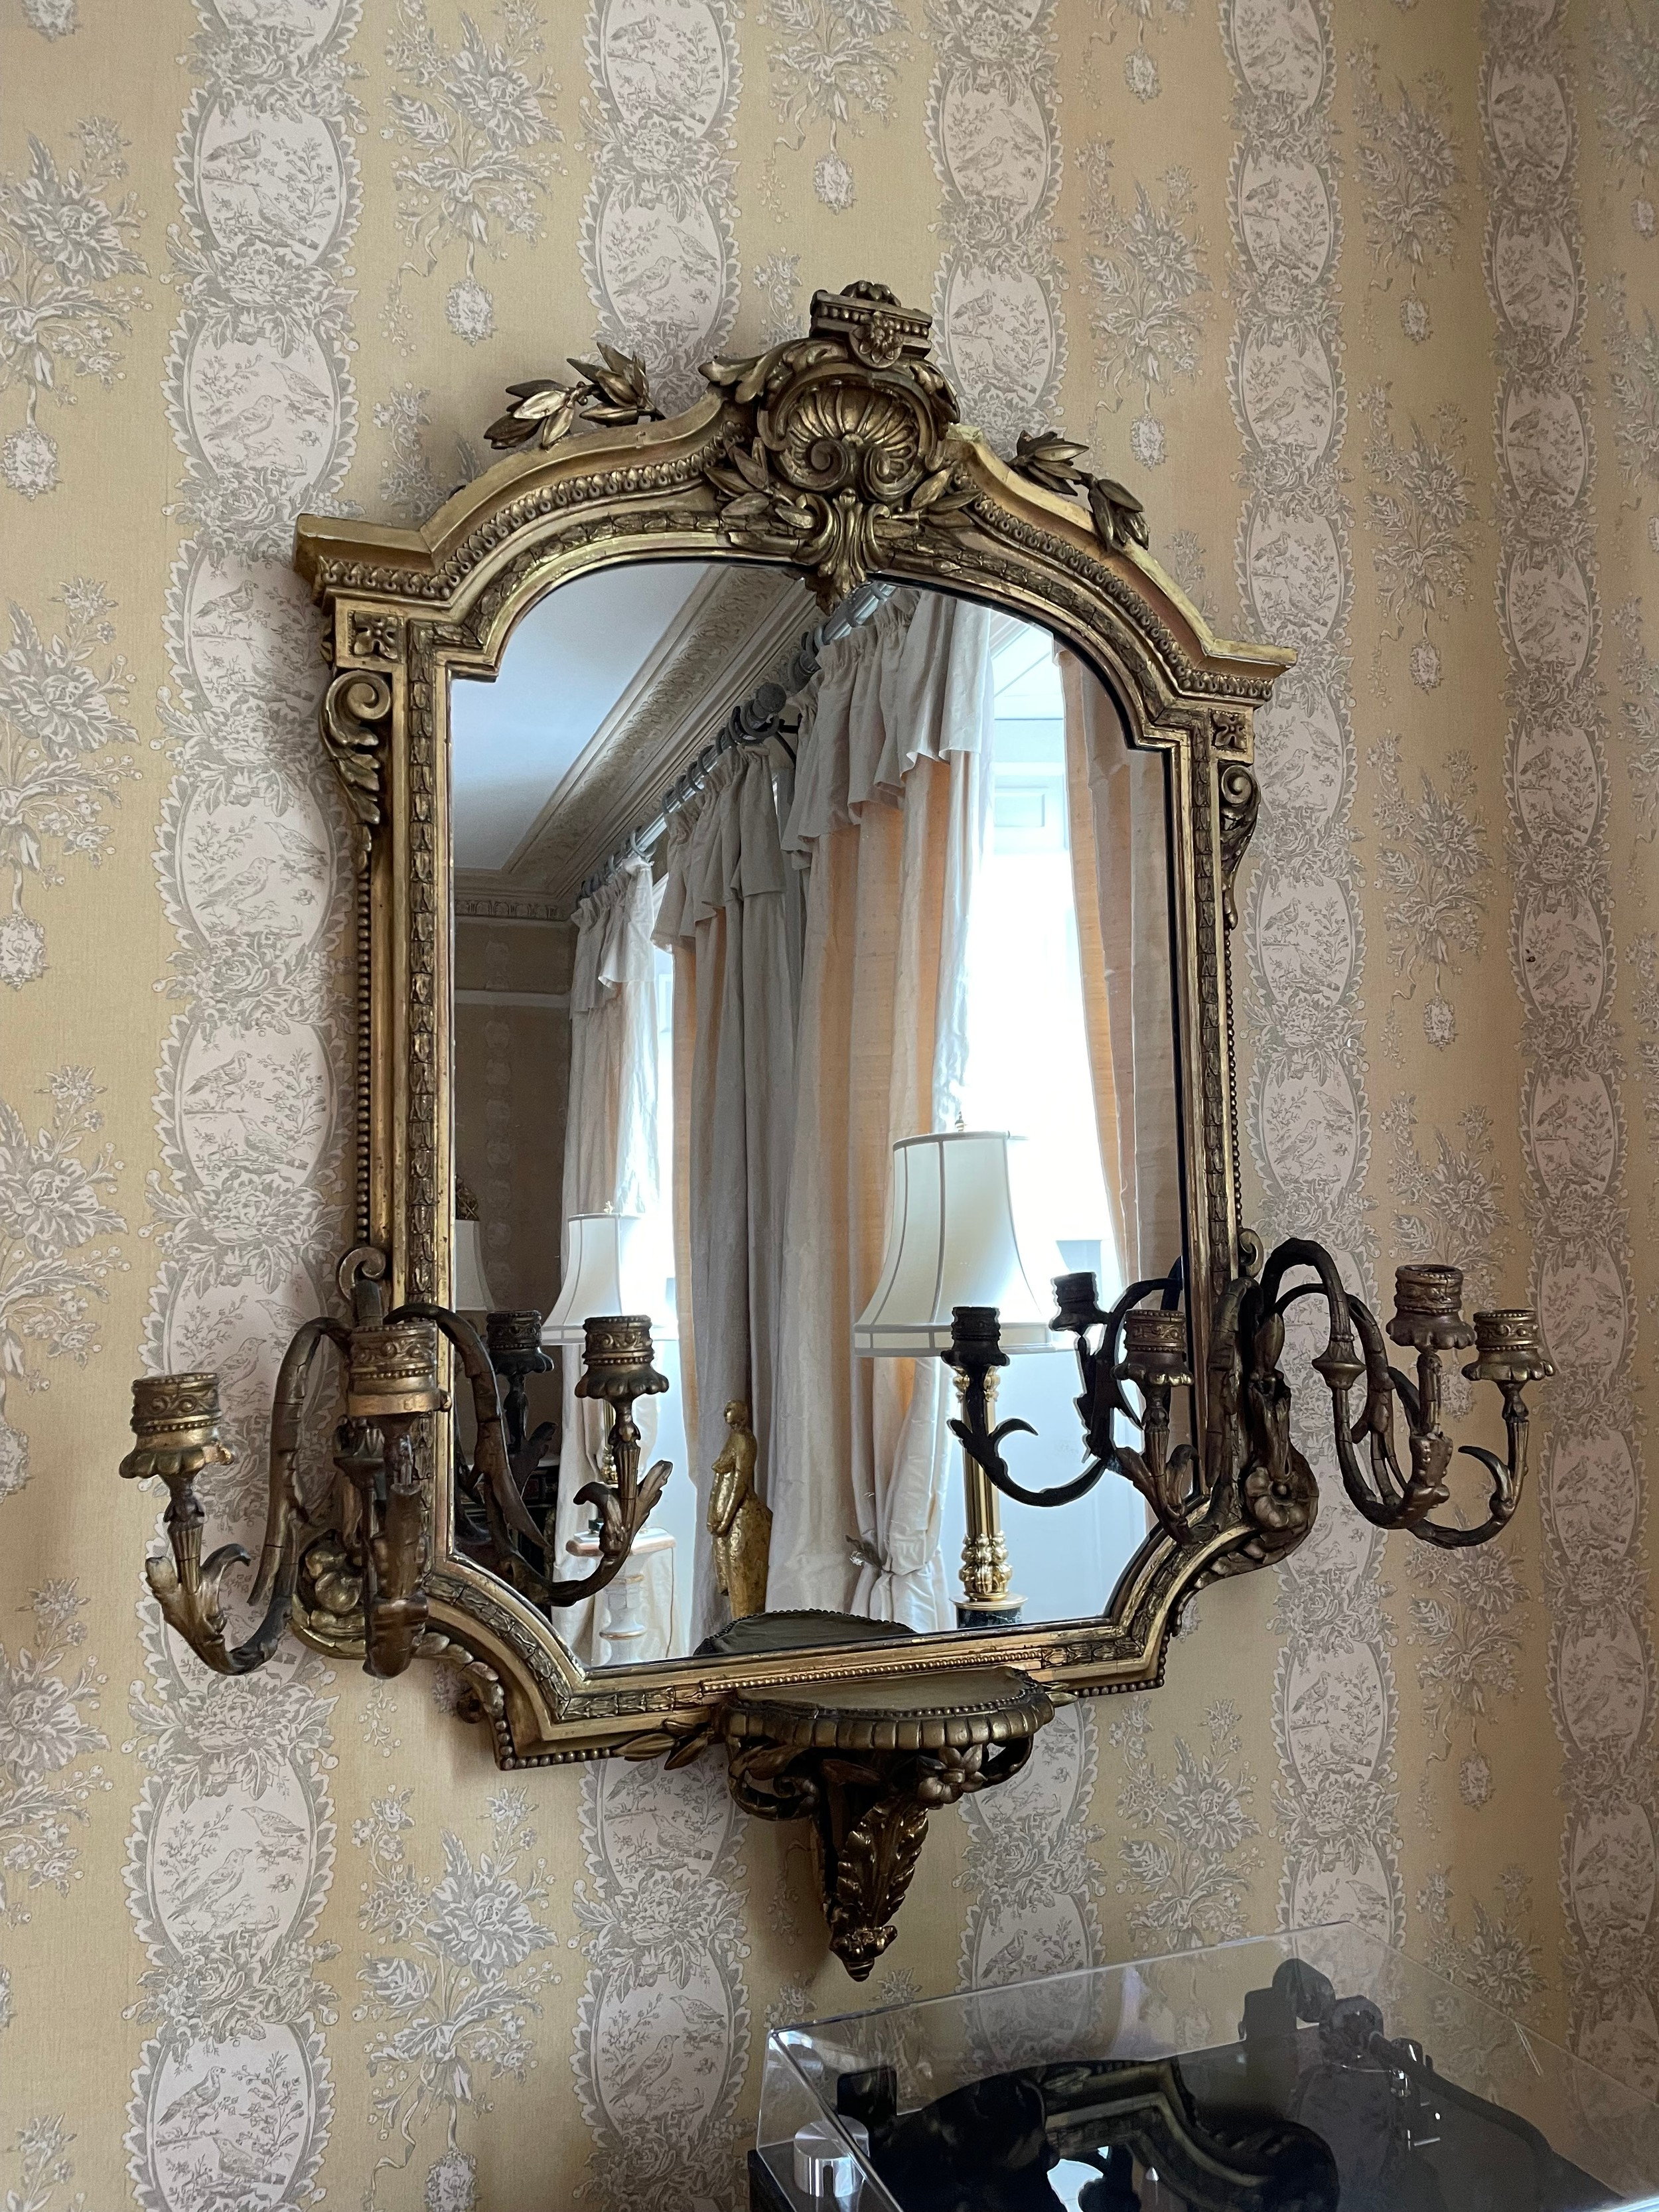 Good 19th century giltwood and gesso girandole mirror, the arch top moulded frame with a shell